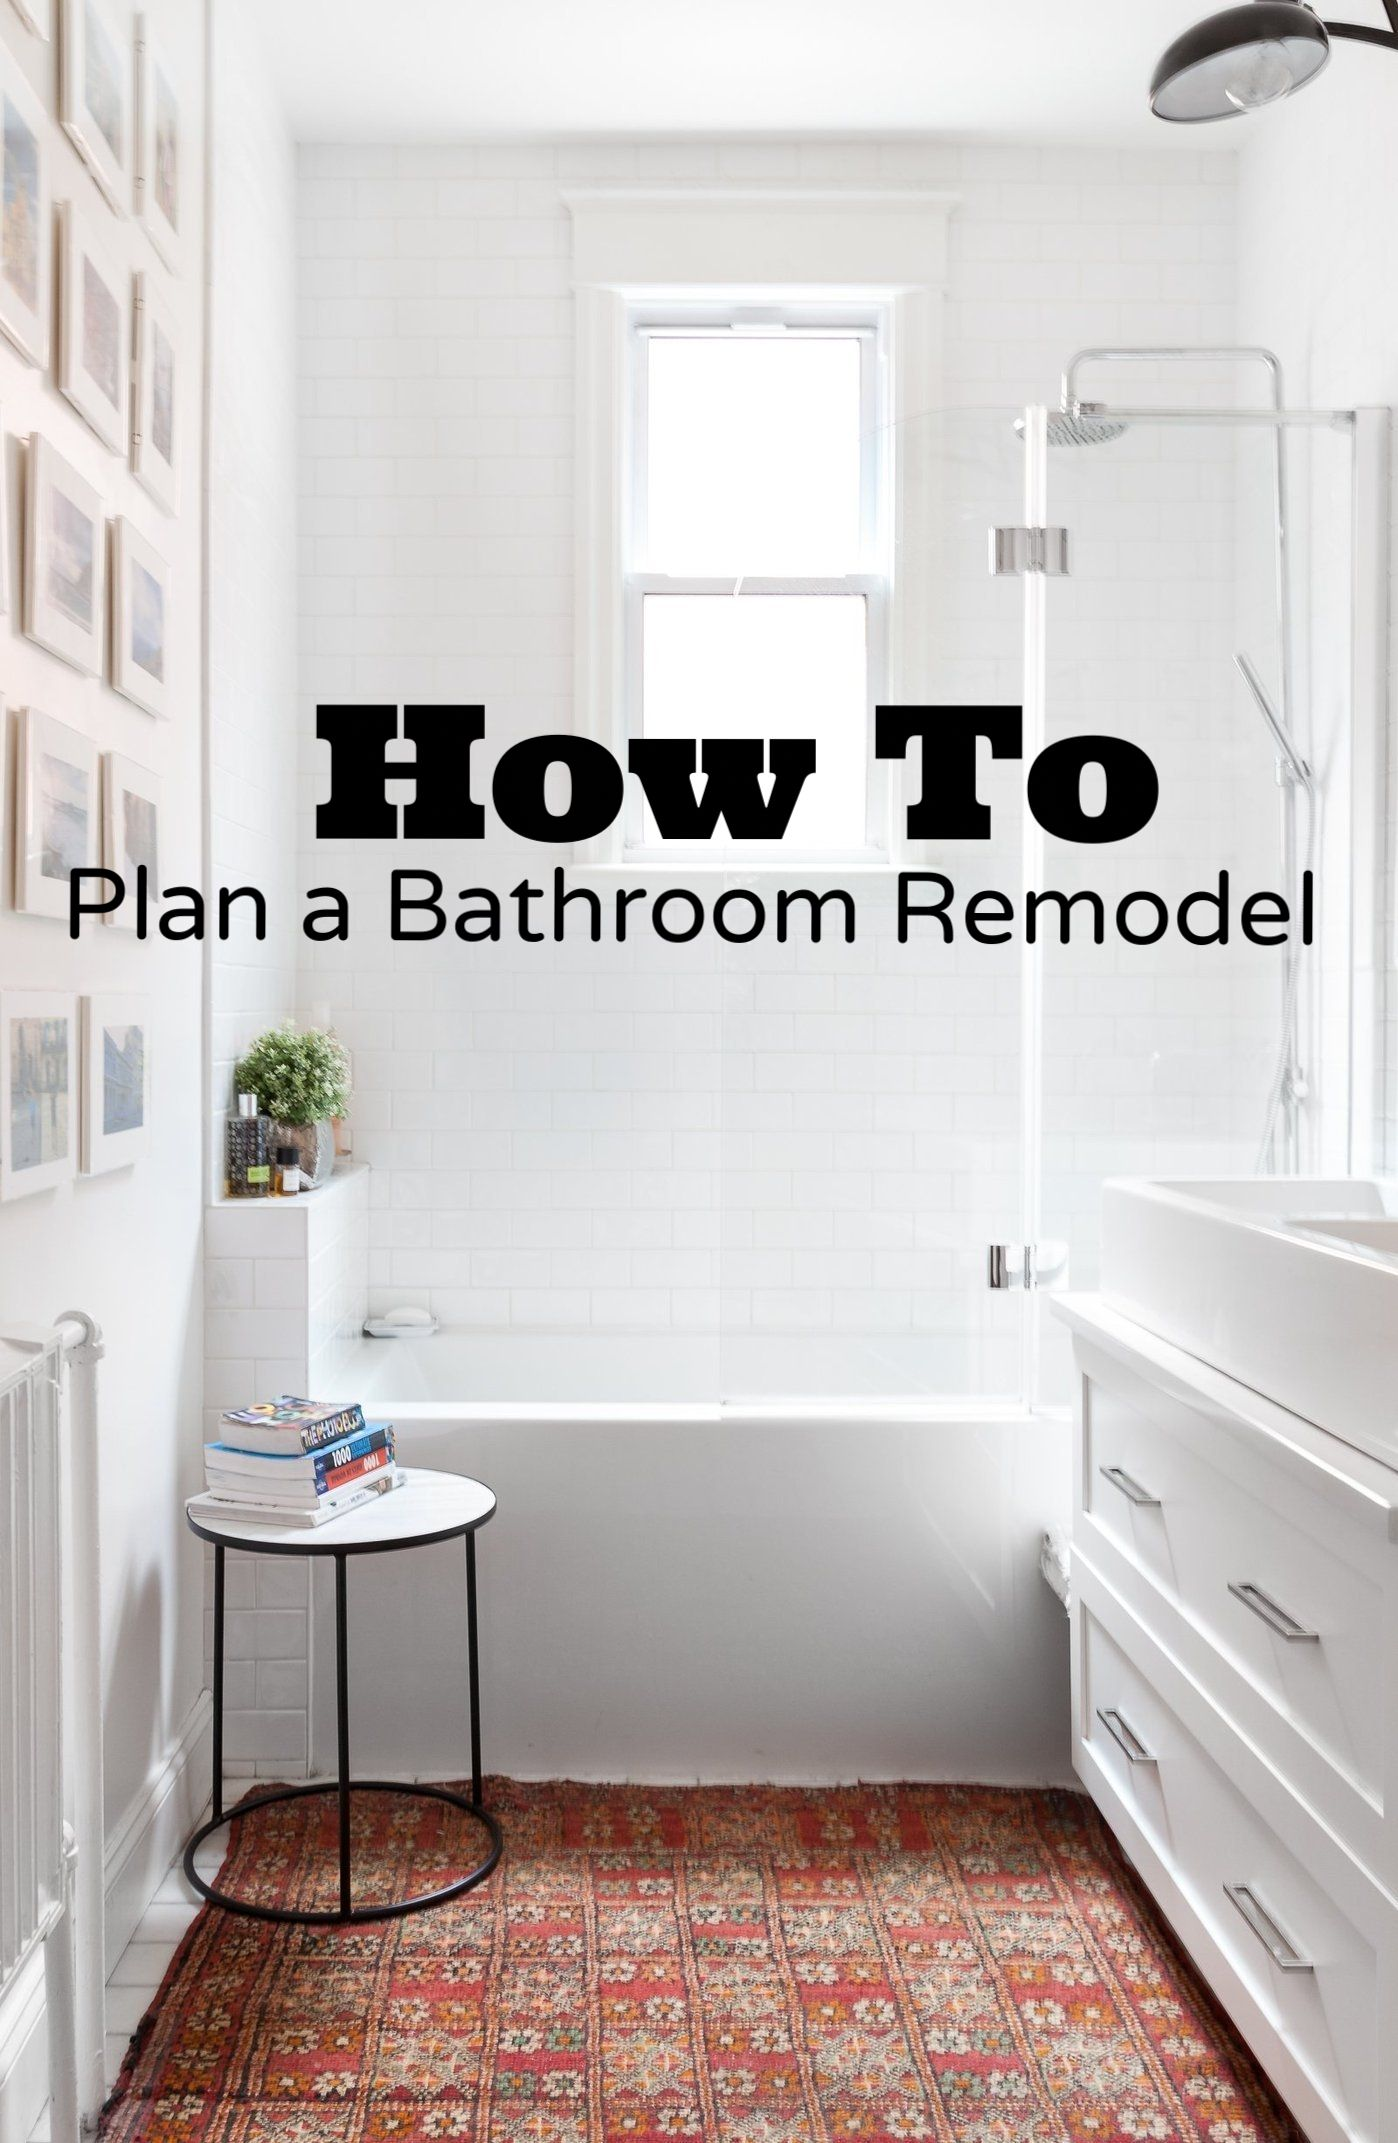 So You Re Thinking Of Remodeling One The Most Necessary Rooms In Your Home Not An Easy Task To Take On Luckily There Are Ways Can Prepare